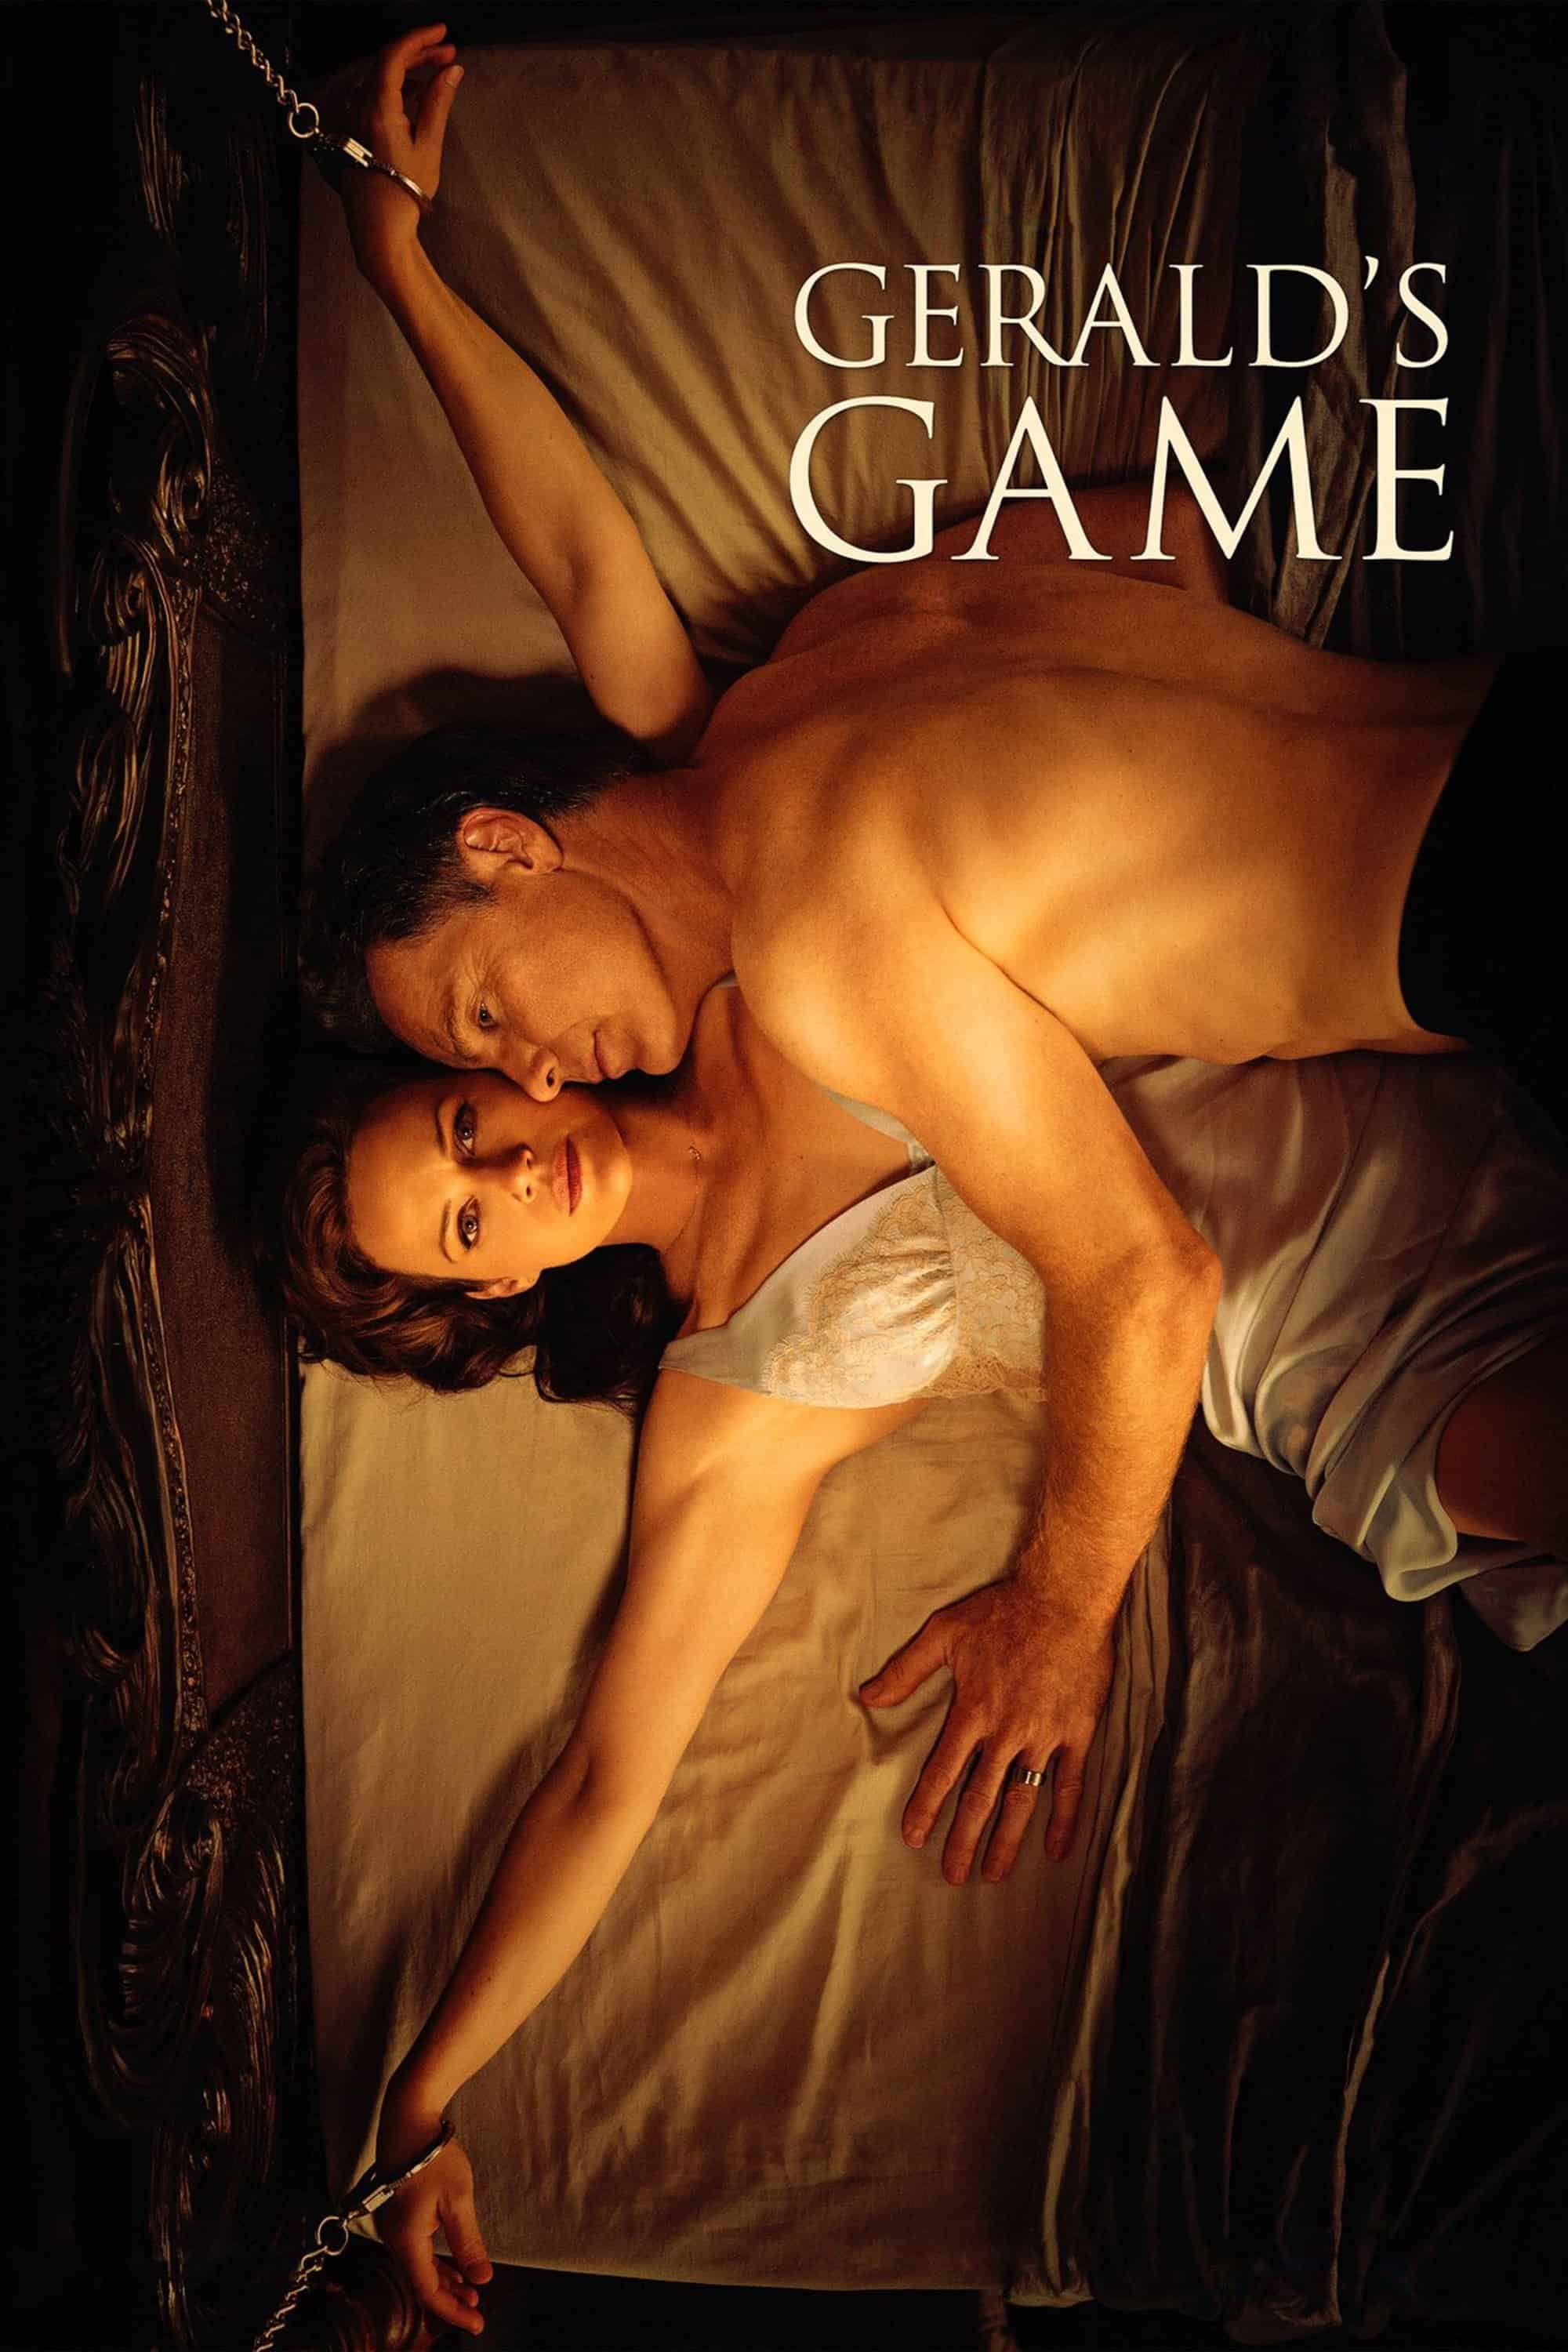 Gerald's Game, 2017